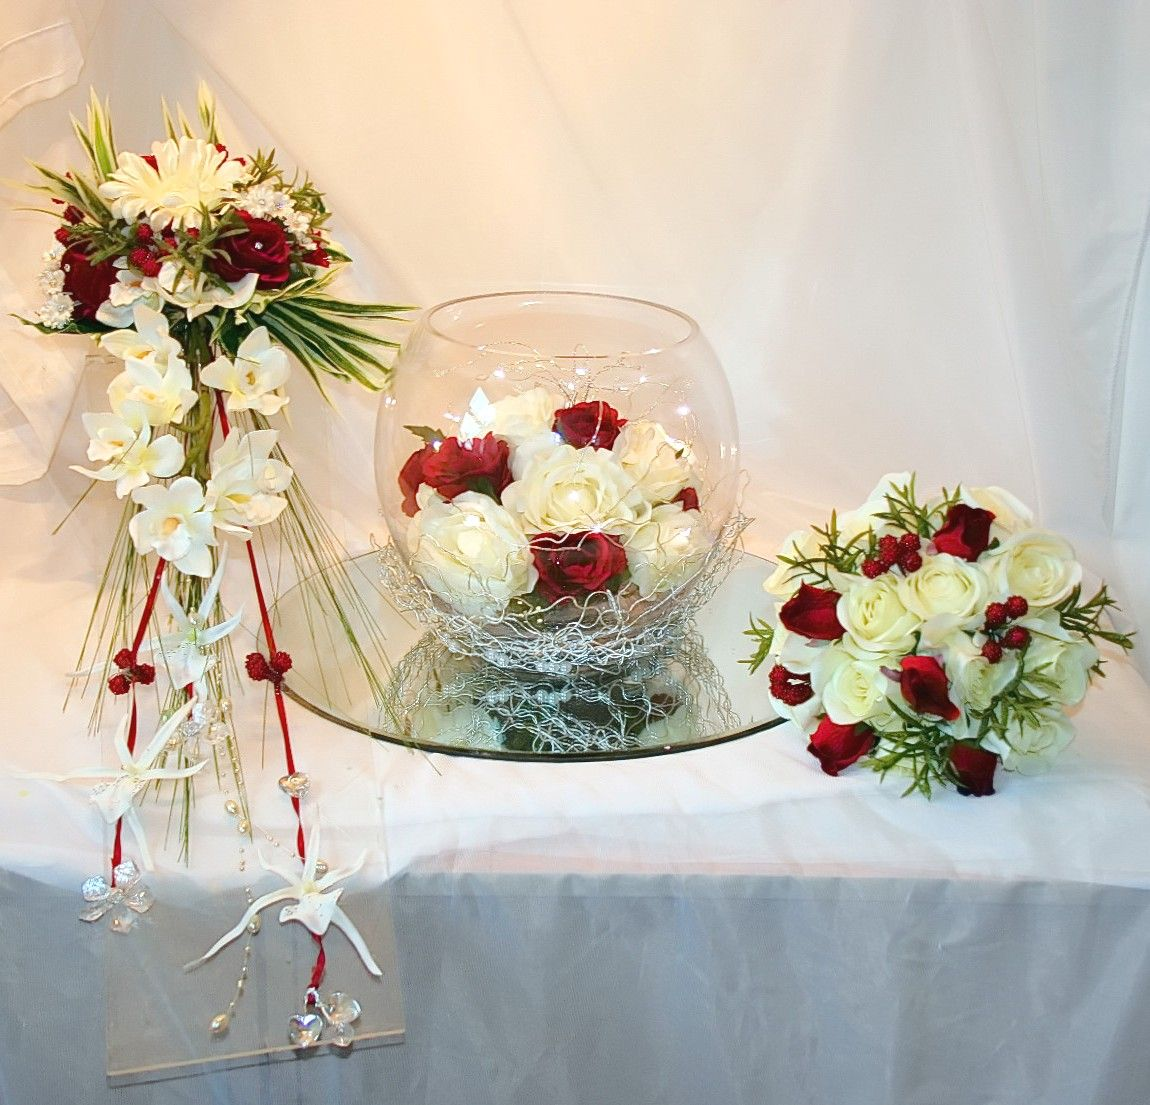 #WeddingWednesday Classic ivory &amp; daring red what a gorgeous combination! #silkflowers #womaninbiz @SmallBizUtd<br>http://pic.twitter.com/QkTDfWnpyQ